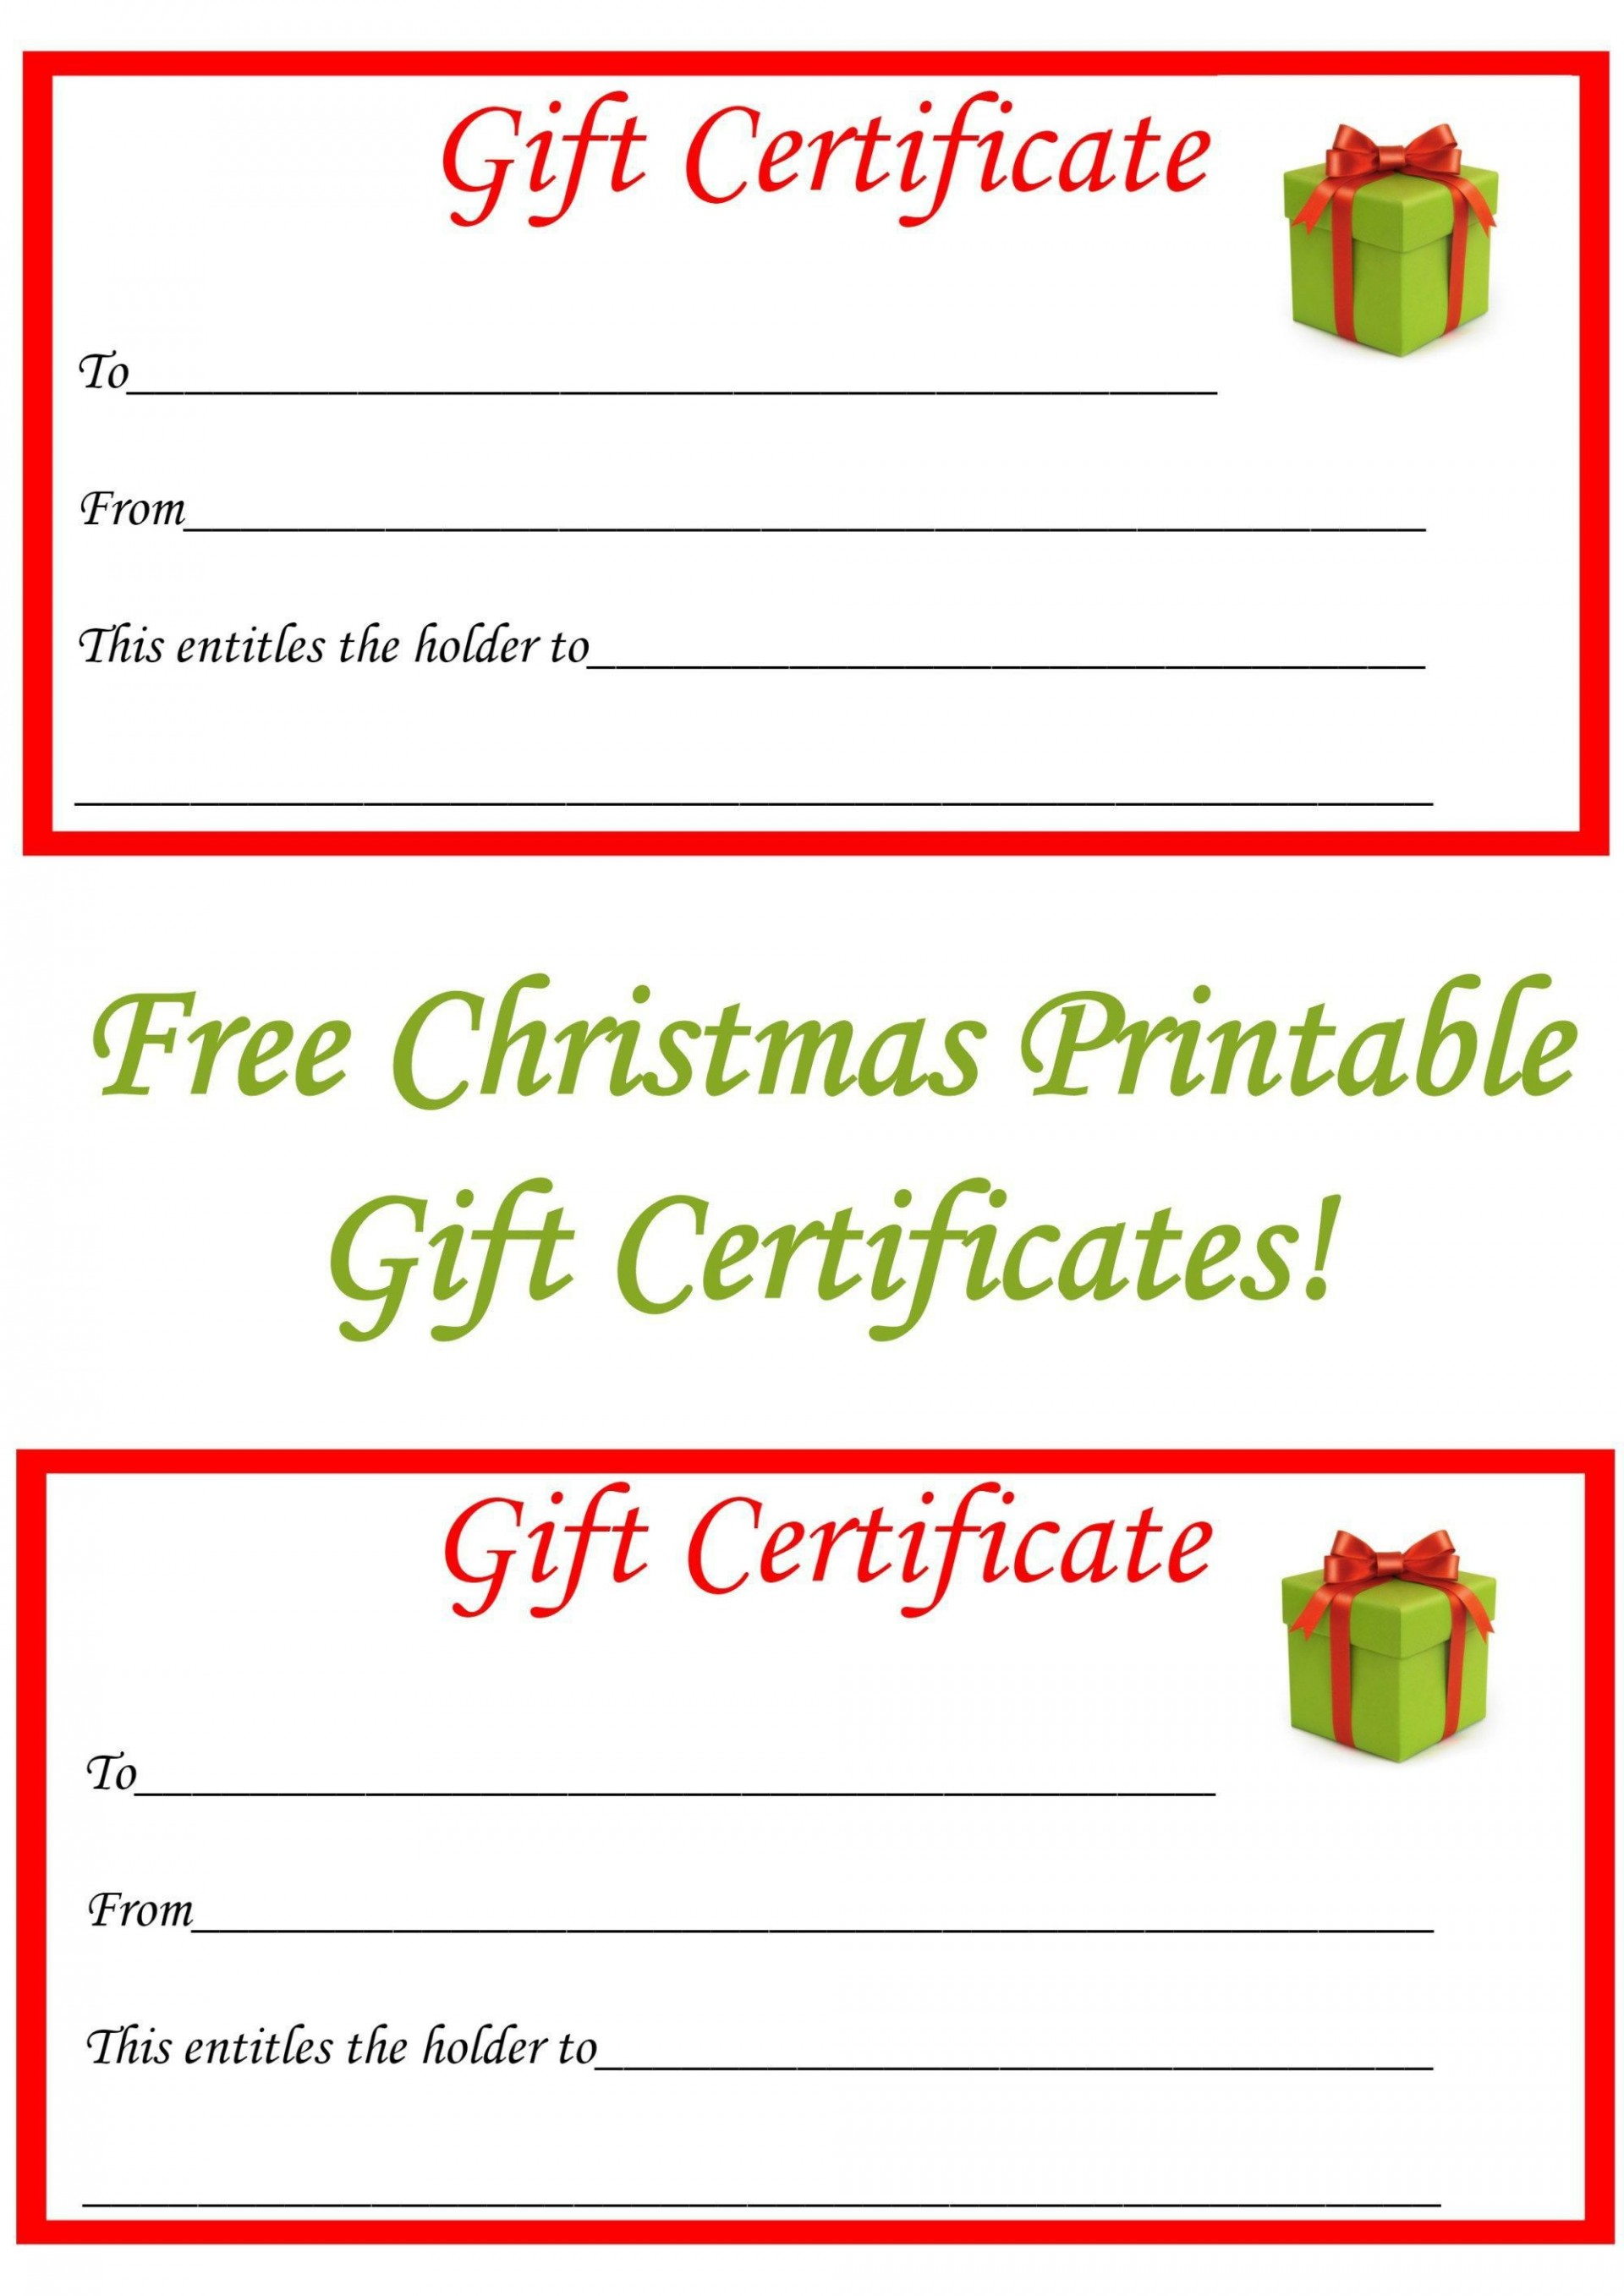 002 Rare Free Silent Auction Gift Certificate Template Idea 1920